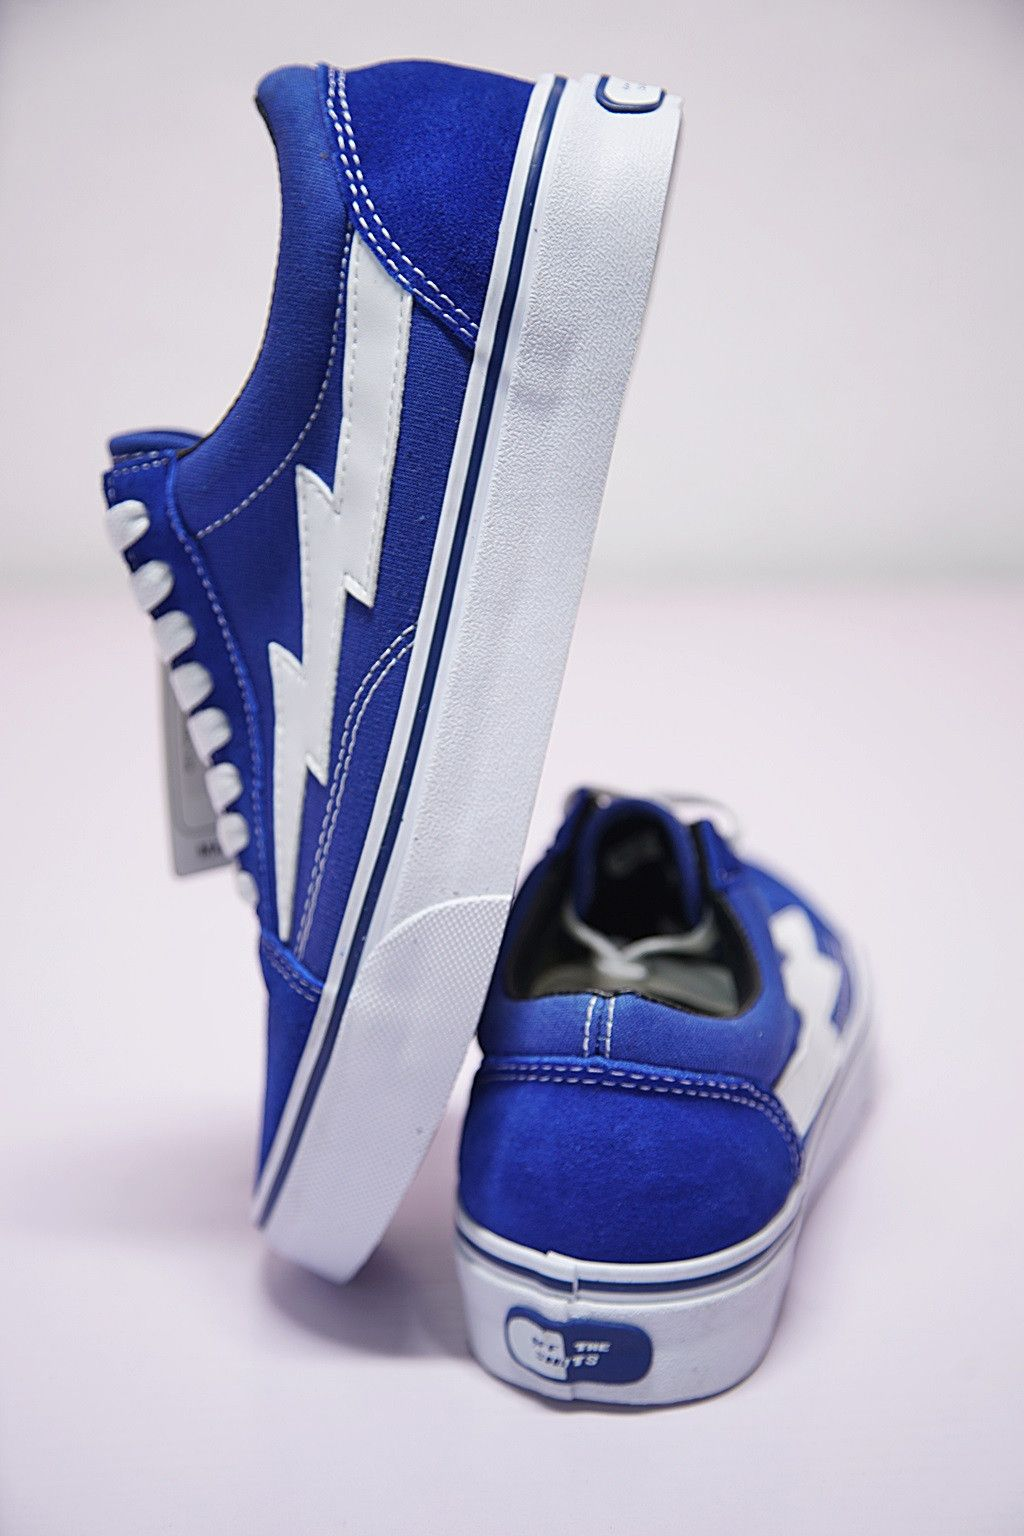 7d75547e2b681d VANS REVENGE X STORM LOW TOP BLUE WHITE SWOOSH 008243190